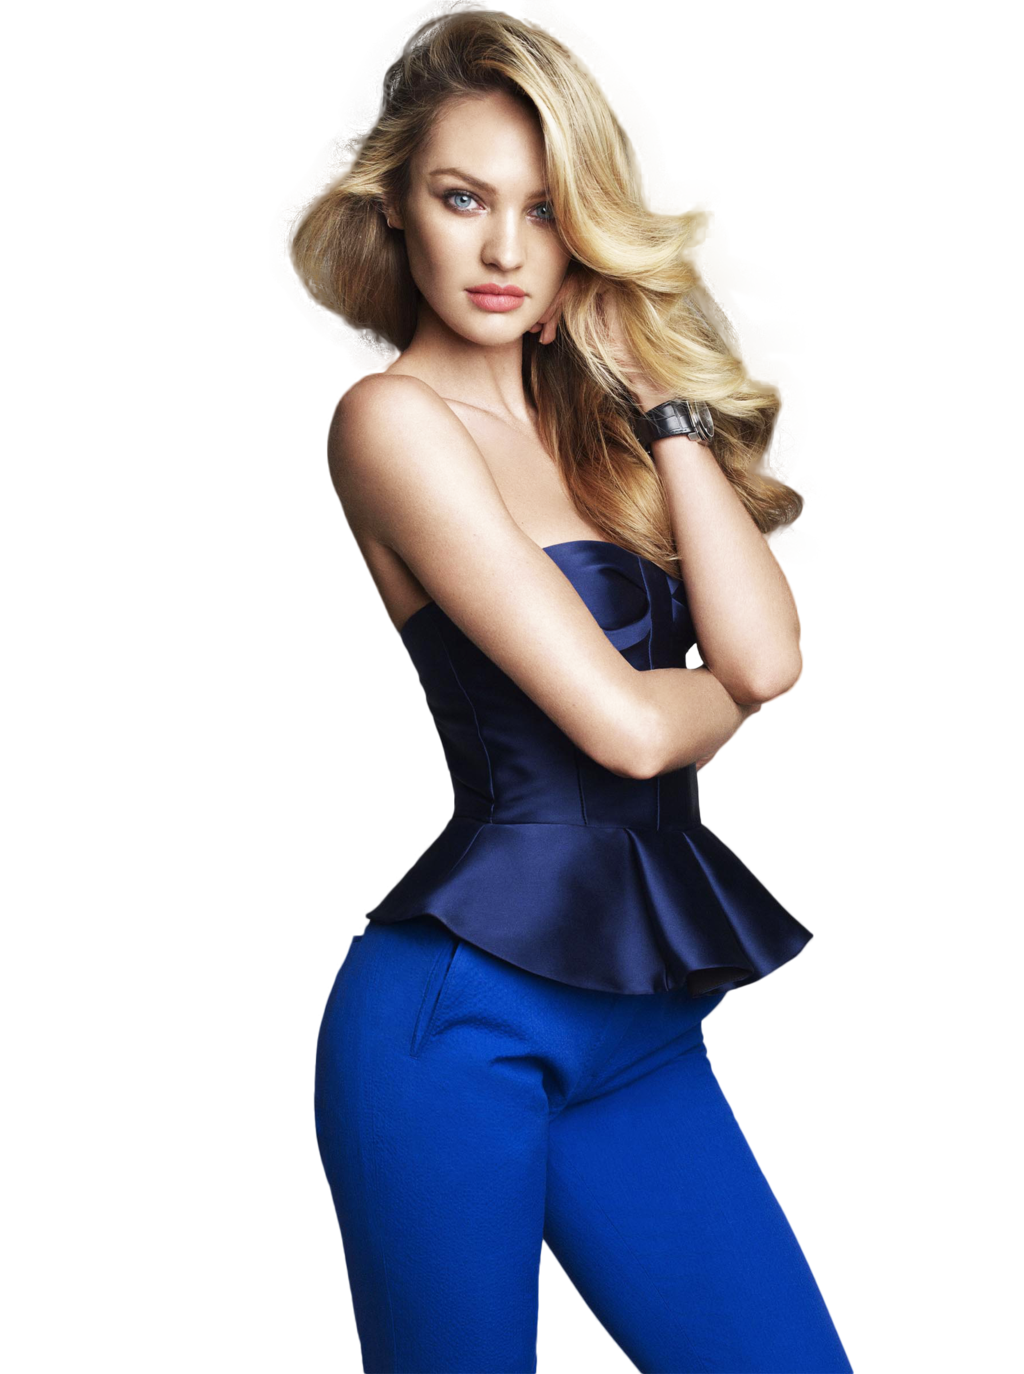 Candice Swanepoel PNG Image SVG Clip arts